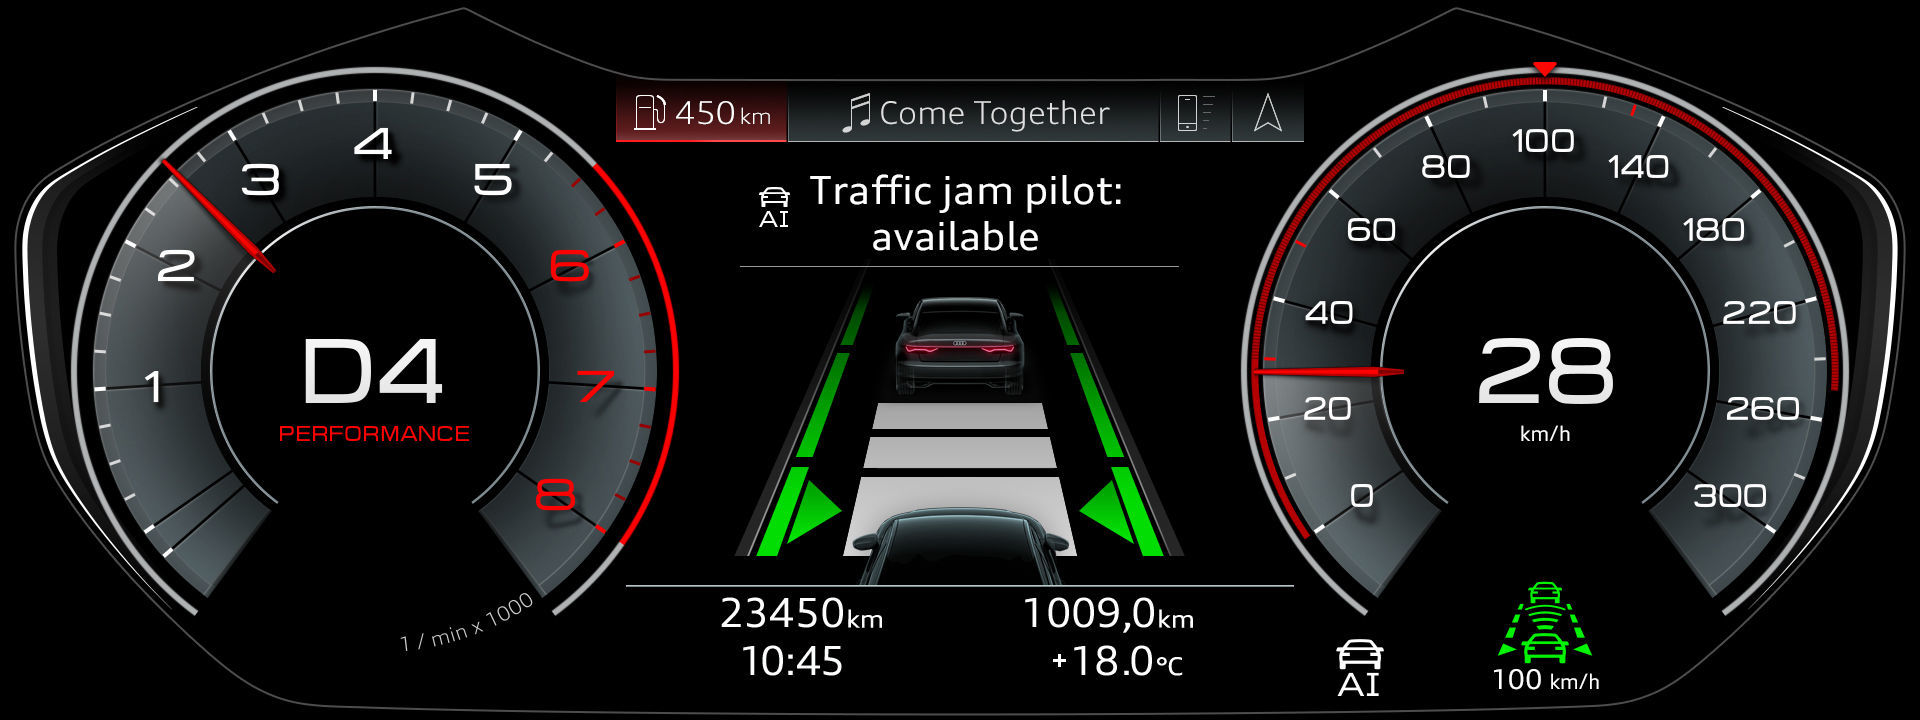 automated driving at a new level the audi ai traffic jam pilot rh audi mediacenter com audi traffic jam pilot video audi traffic jam pilot vs tesla autopilot